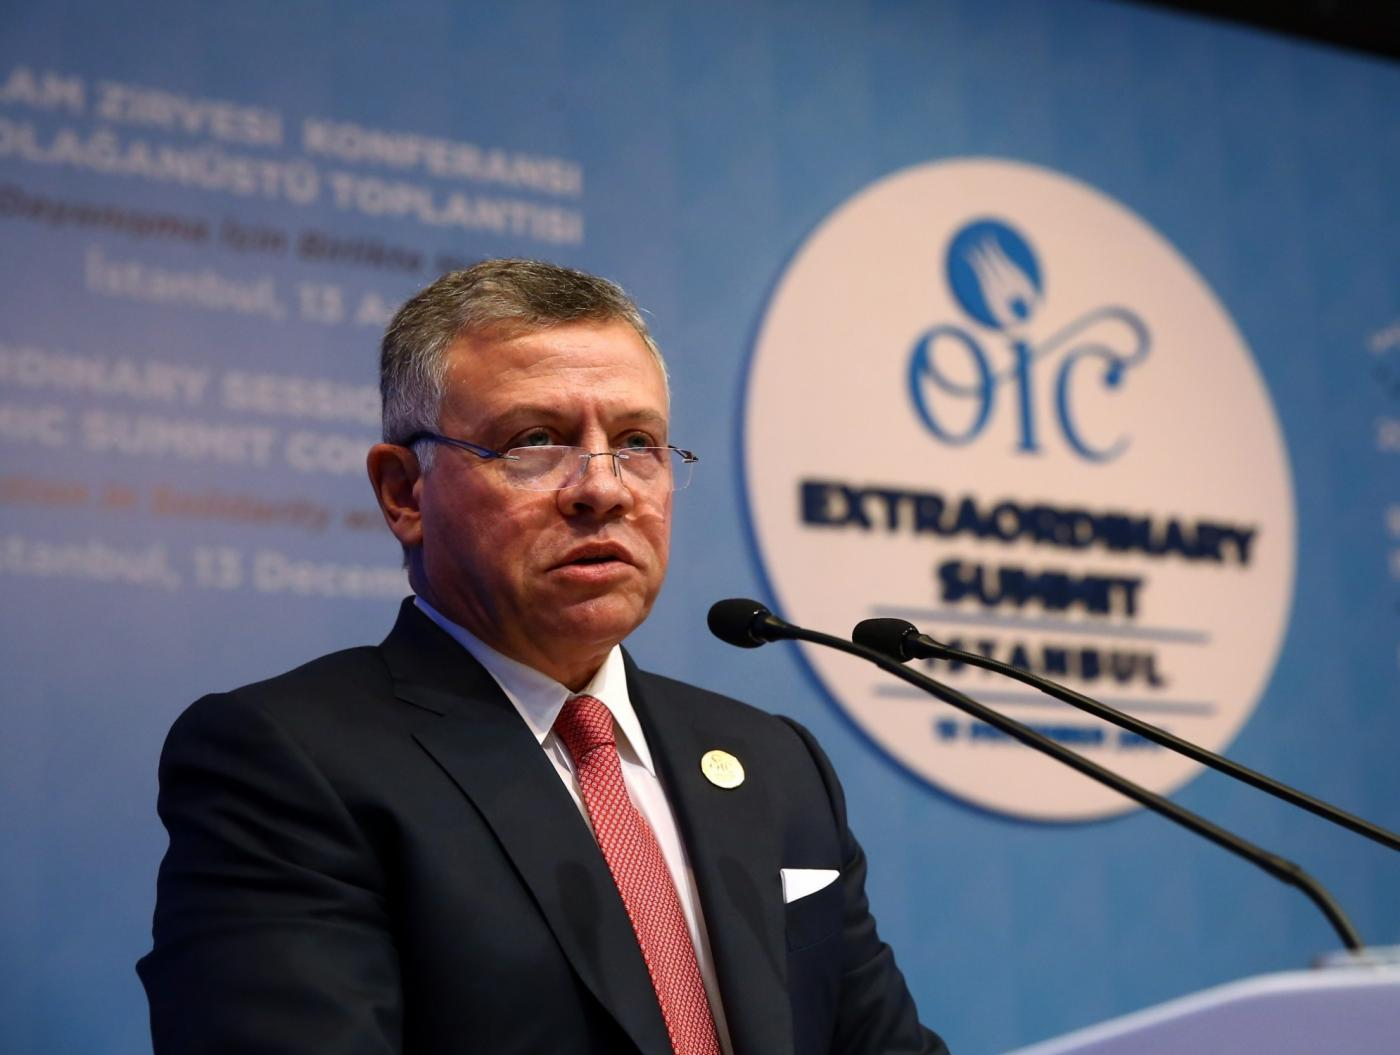 ISTANBUL, Dec. 13, 2017 (Xinhua) -- Jordanian monarch King Abdullah II delivers a speech during the extraordinary summit of the Organization of Islamic Cooperation (OIC) in Istanbul, Turkey, on Dec. 13, 2017. Turkish President Recep Tayyip Erdogan on Wednesday urged the Islamic world to recognize Jerusalem as the capital of Palestine, while Palestinian President Mahmoud Abbas refused any U.S. involvement in the peace process. (Xinhua/Anadolu Agency/IANS) by .